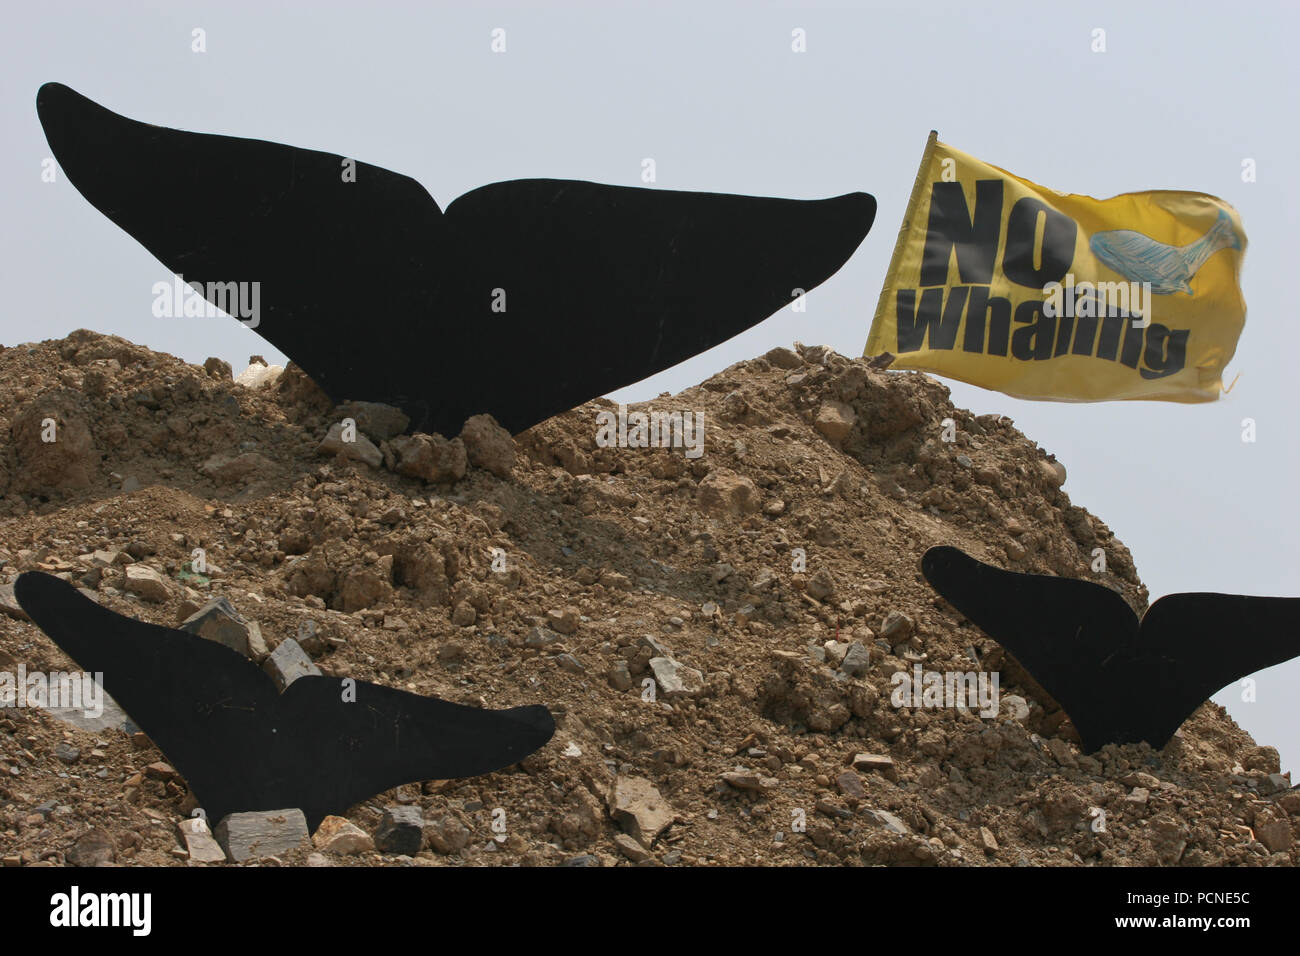 The Greenpeace 'Whale Embassy' has been occupying the site of a proposed whale research facility and meat processing plant, and the activists are refusing to leave until the plans for the plant are cancelled. The activists were ordered to vacate the land by 15th May 2005, but refused to do so. - Stock Image